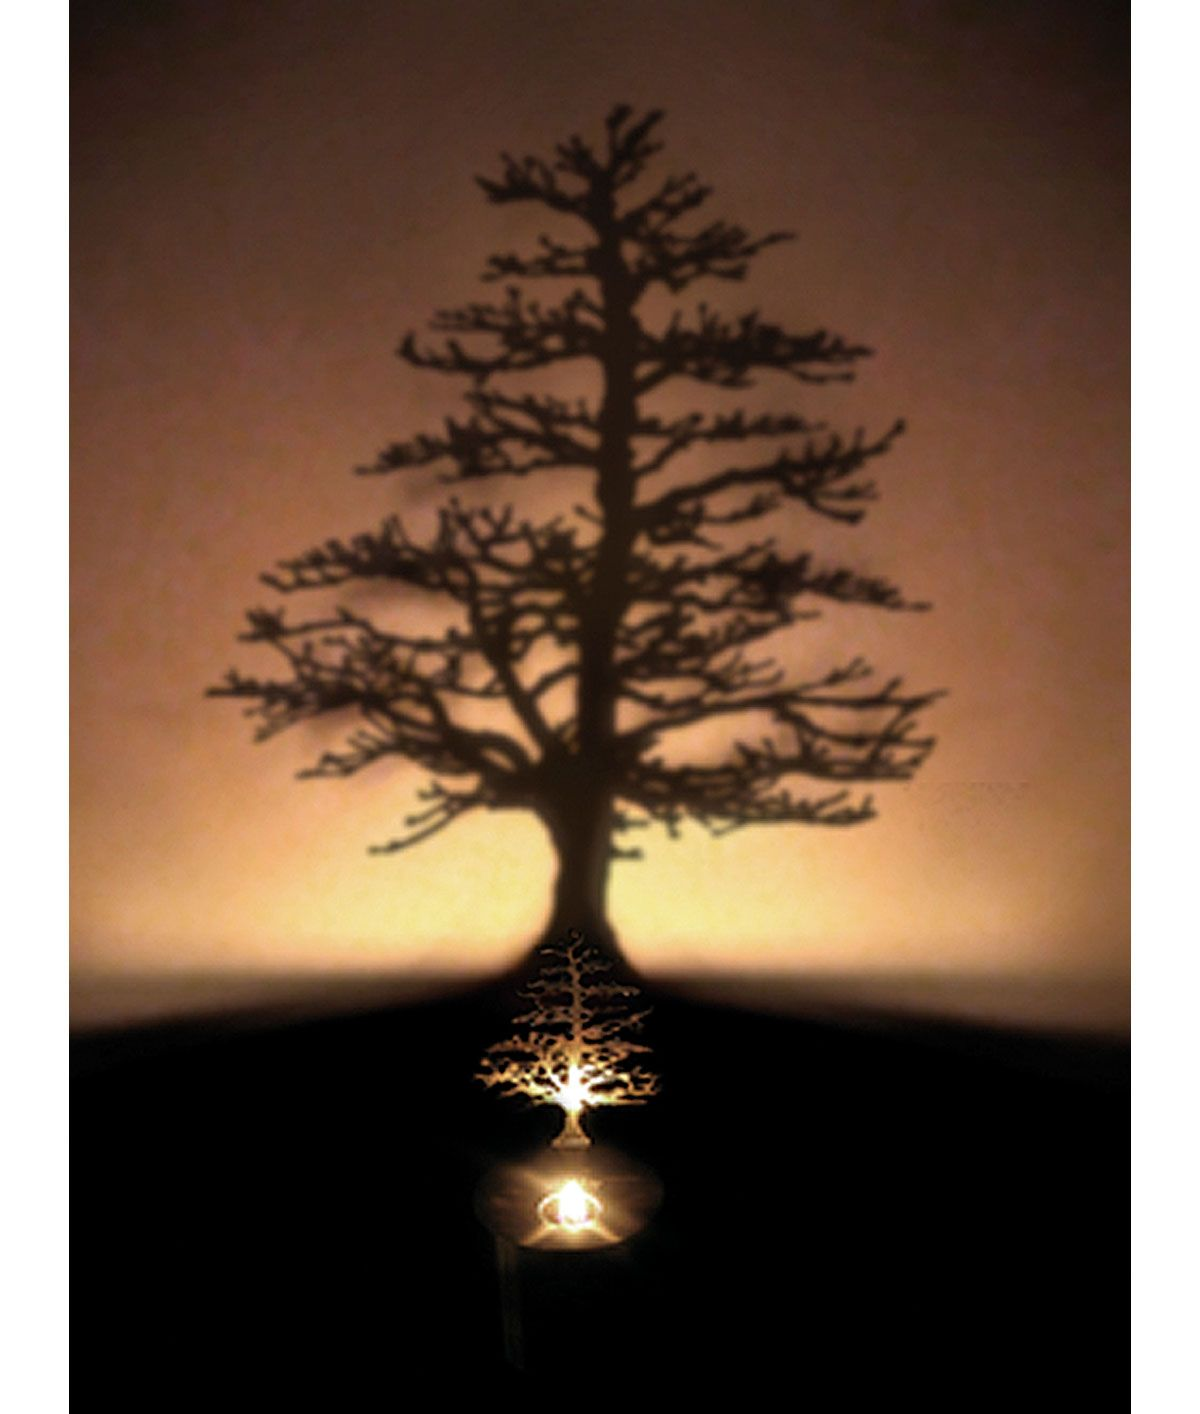 Lumen oil candle shadow projector. Casts a tree shadow, onto the wall. beautiful. $48